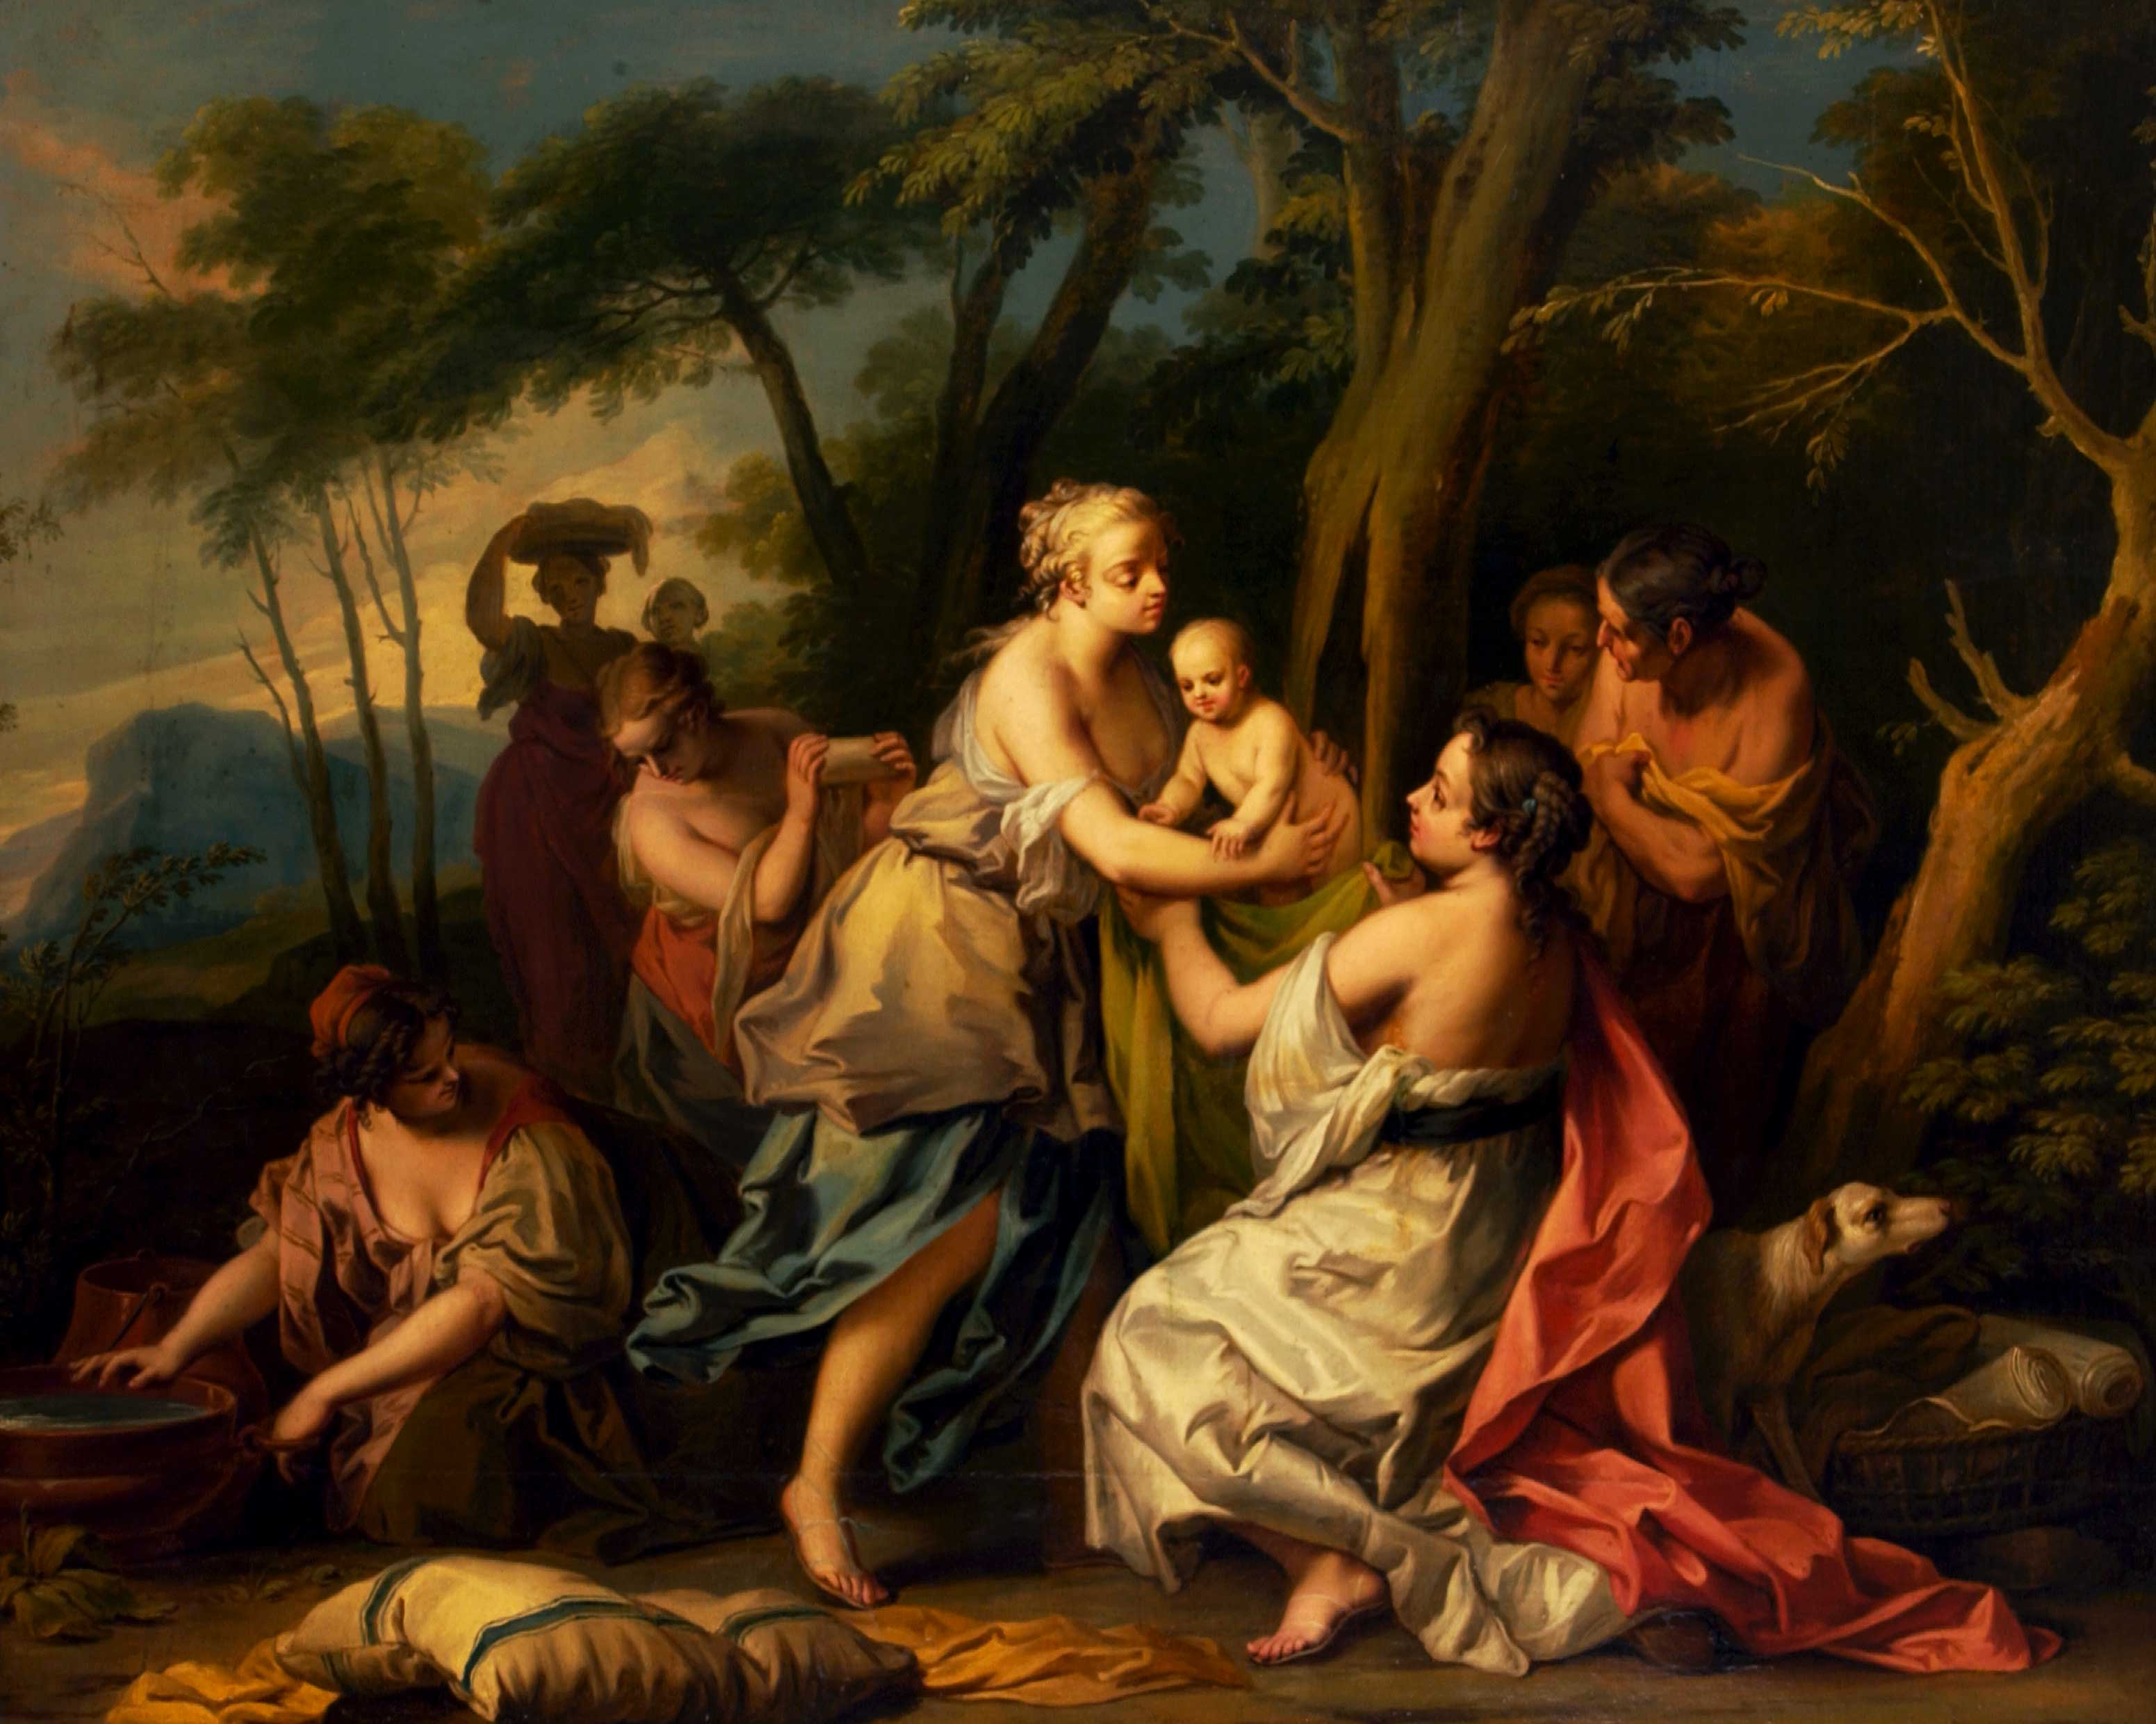 The Finding of Oedipus